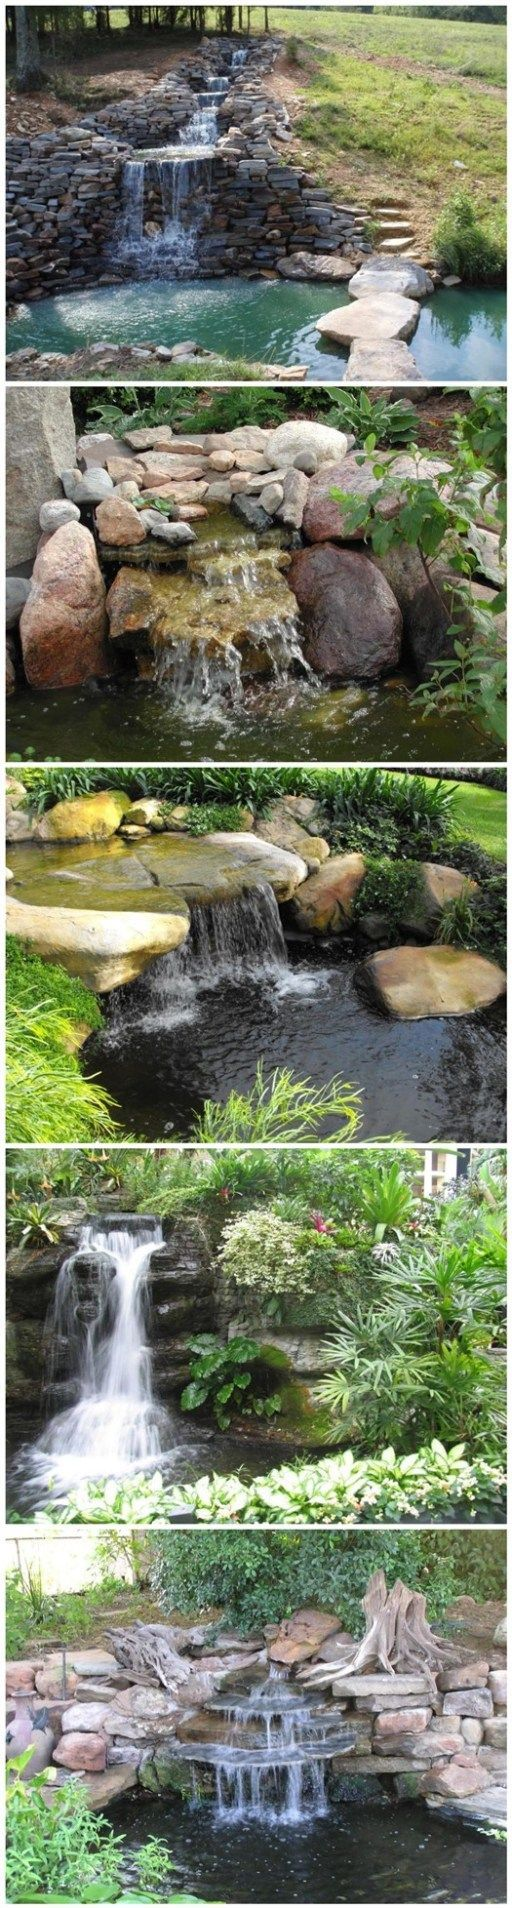 10 best Fish ponds images on Pinterest | Gardens, DIY and Blues